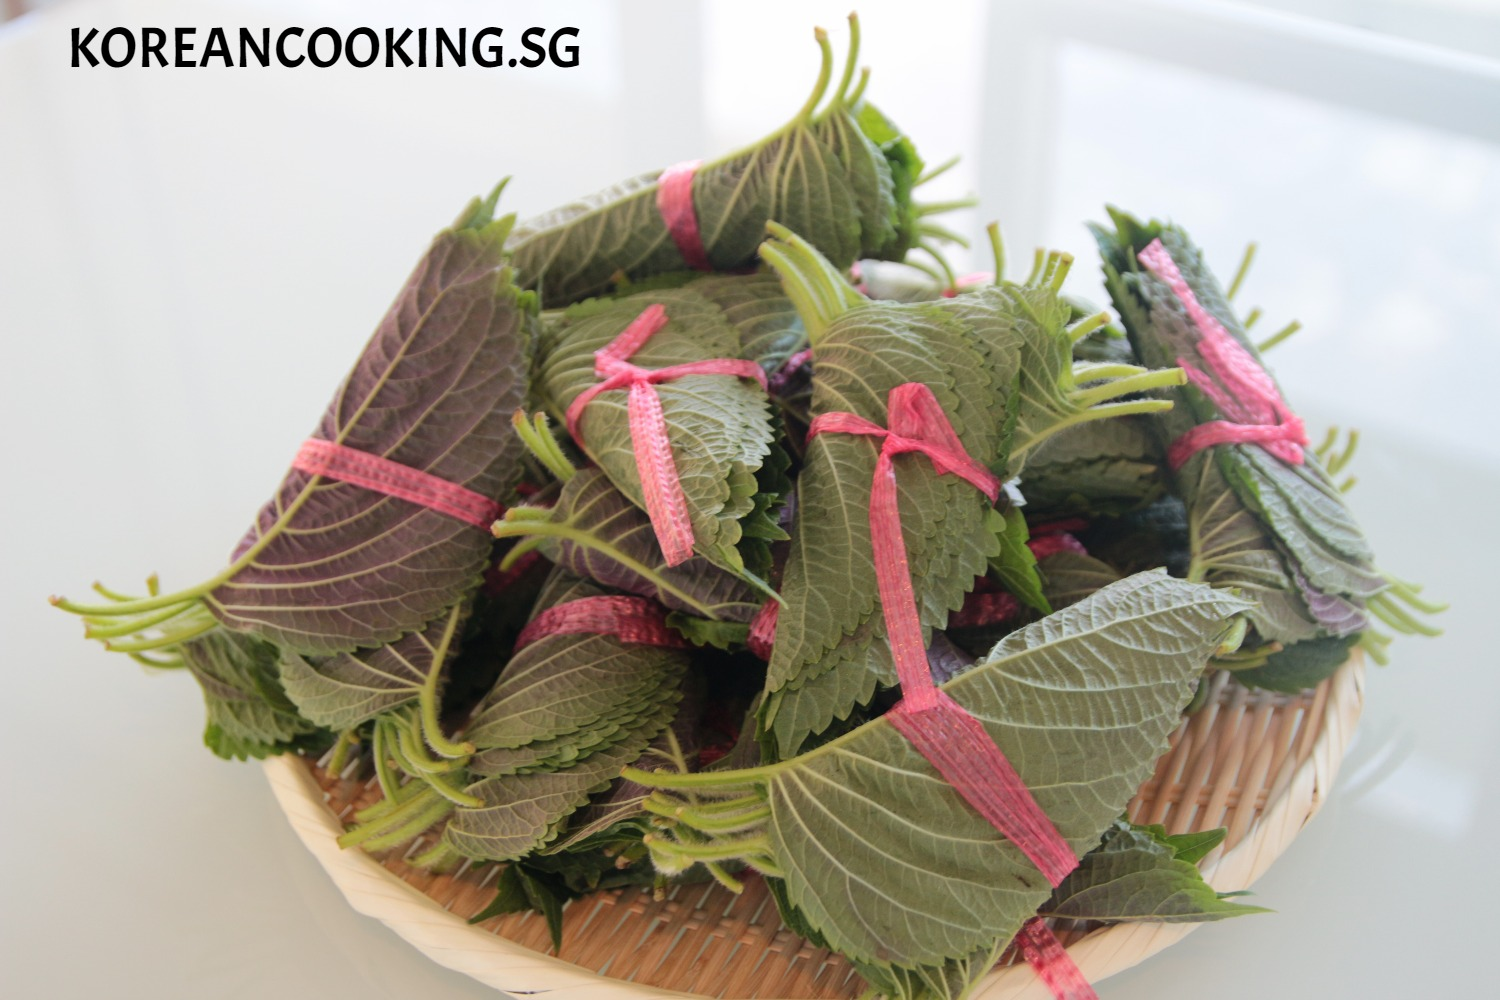 KOREANCOOKING. PERILLA LEAVES